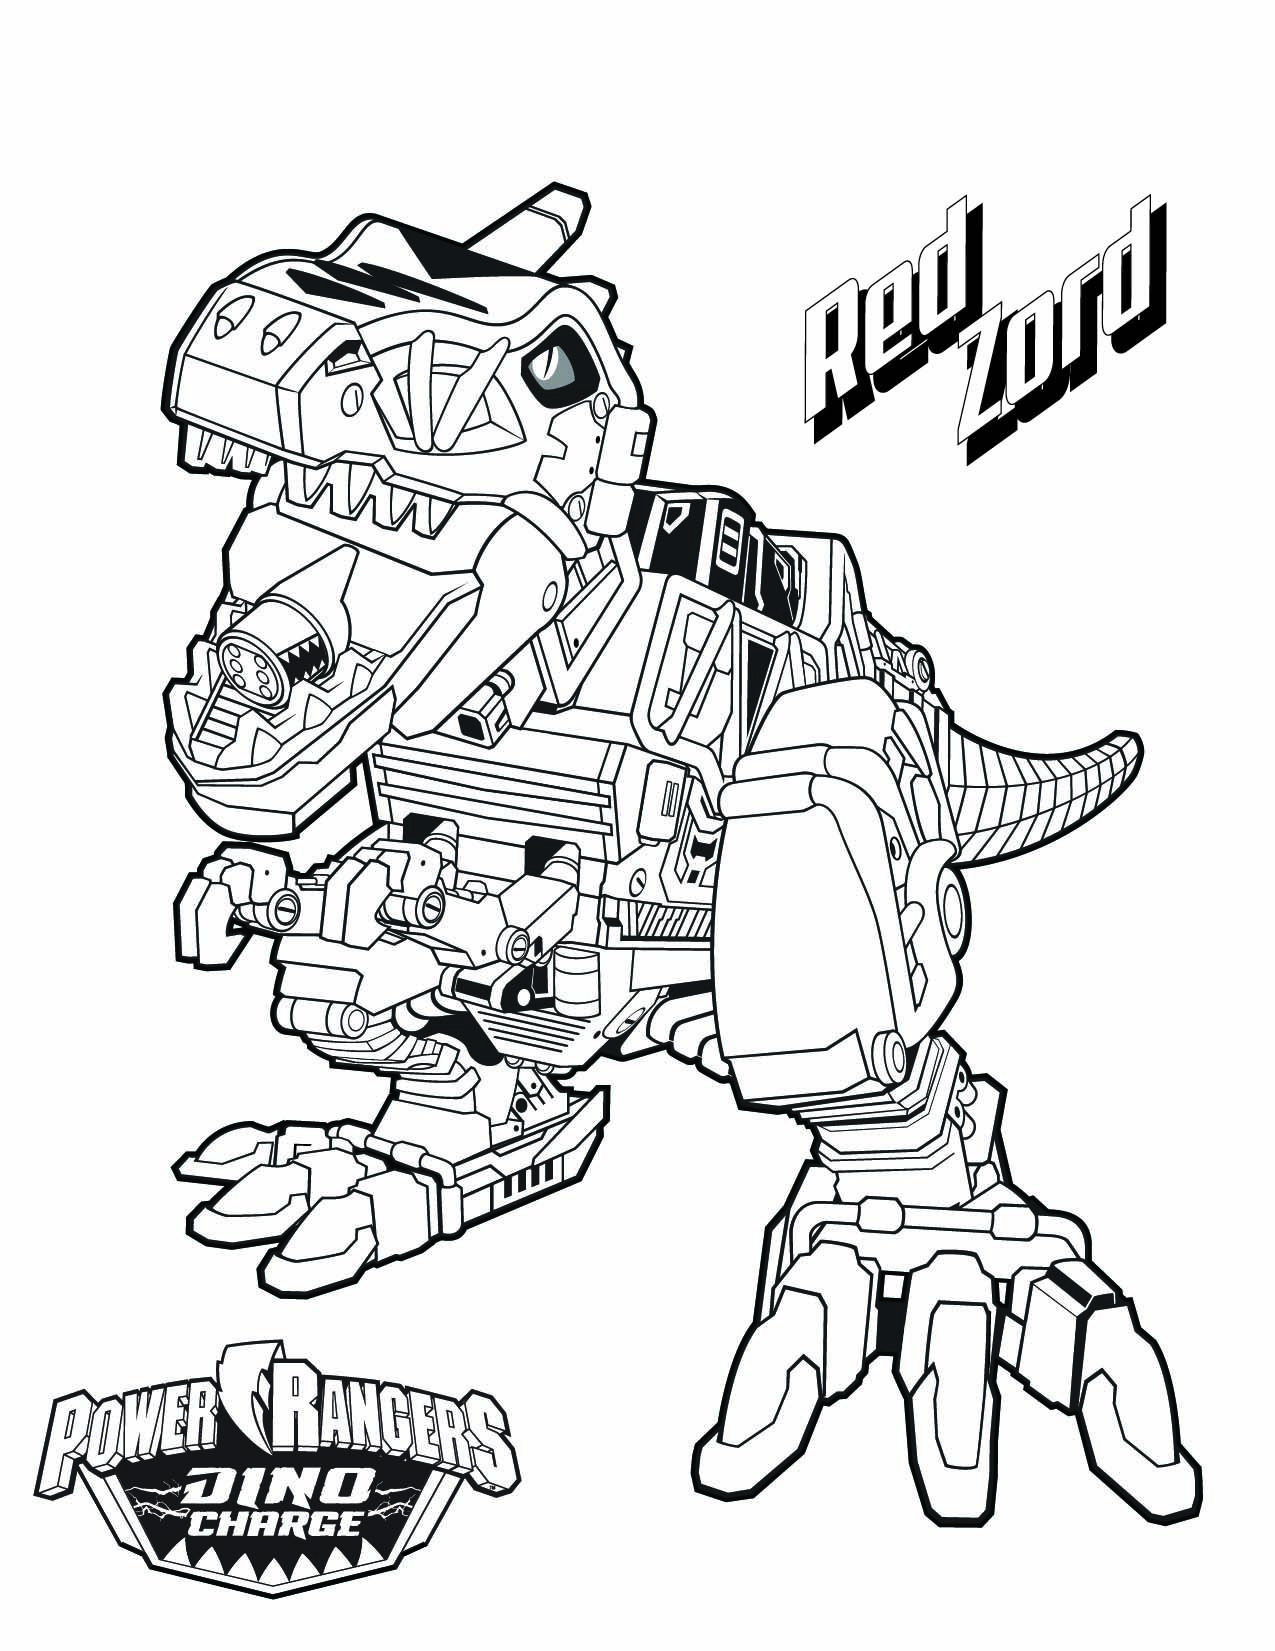 Tyrannosaurus Rex Coloring Page Power Rangers The Official Power Rangers Website Power Rangers Coloring Pages Power Rangers Power Rangers Dino